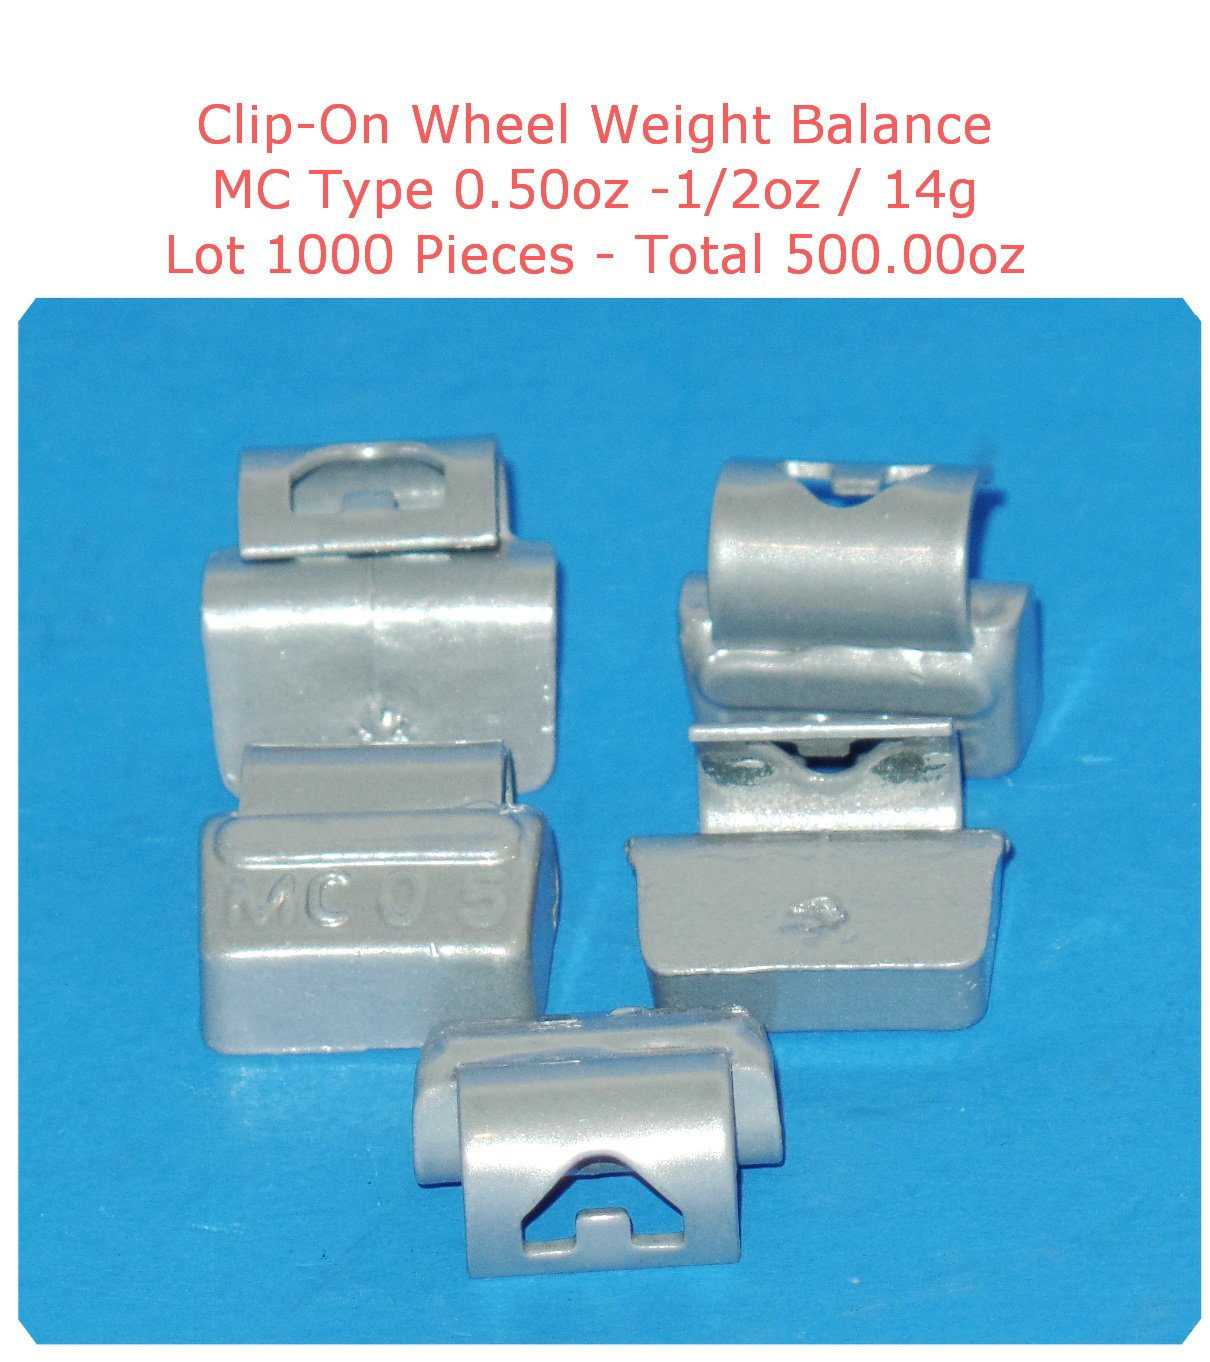 (500 Pieces) ZN CLIP-ON WHEEL WEIGHT BALANCE 0.50 1/2oz MC Type Total250.00oz (Use for All Types of Alloy wheels On Passenger Cars , Trucks , Vans & Motorcycles)